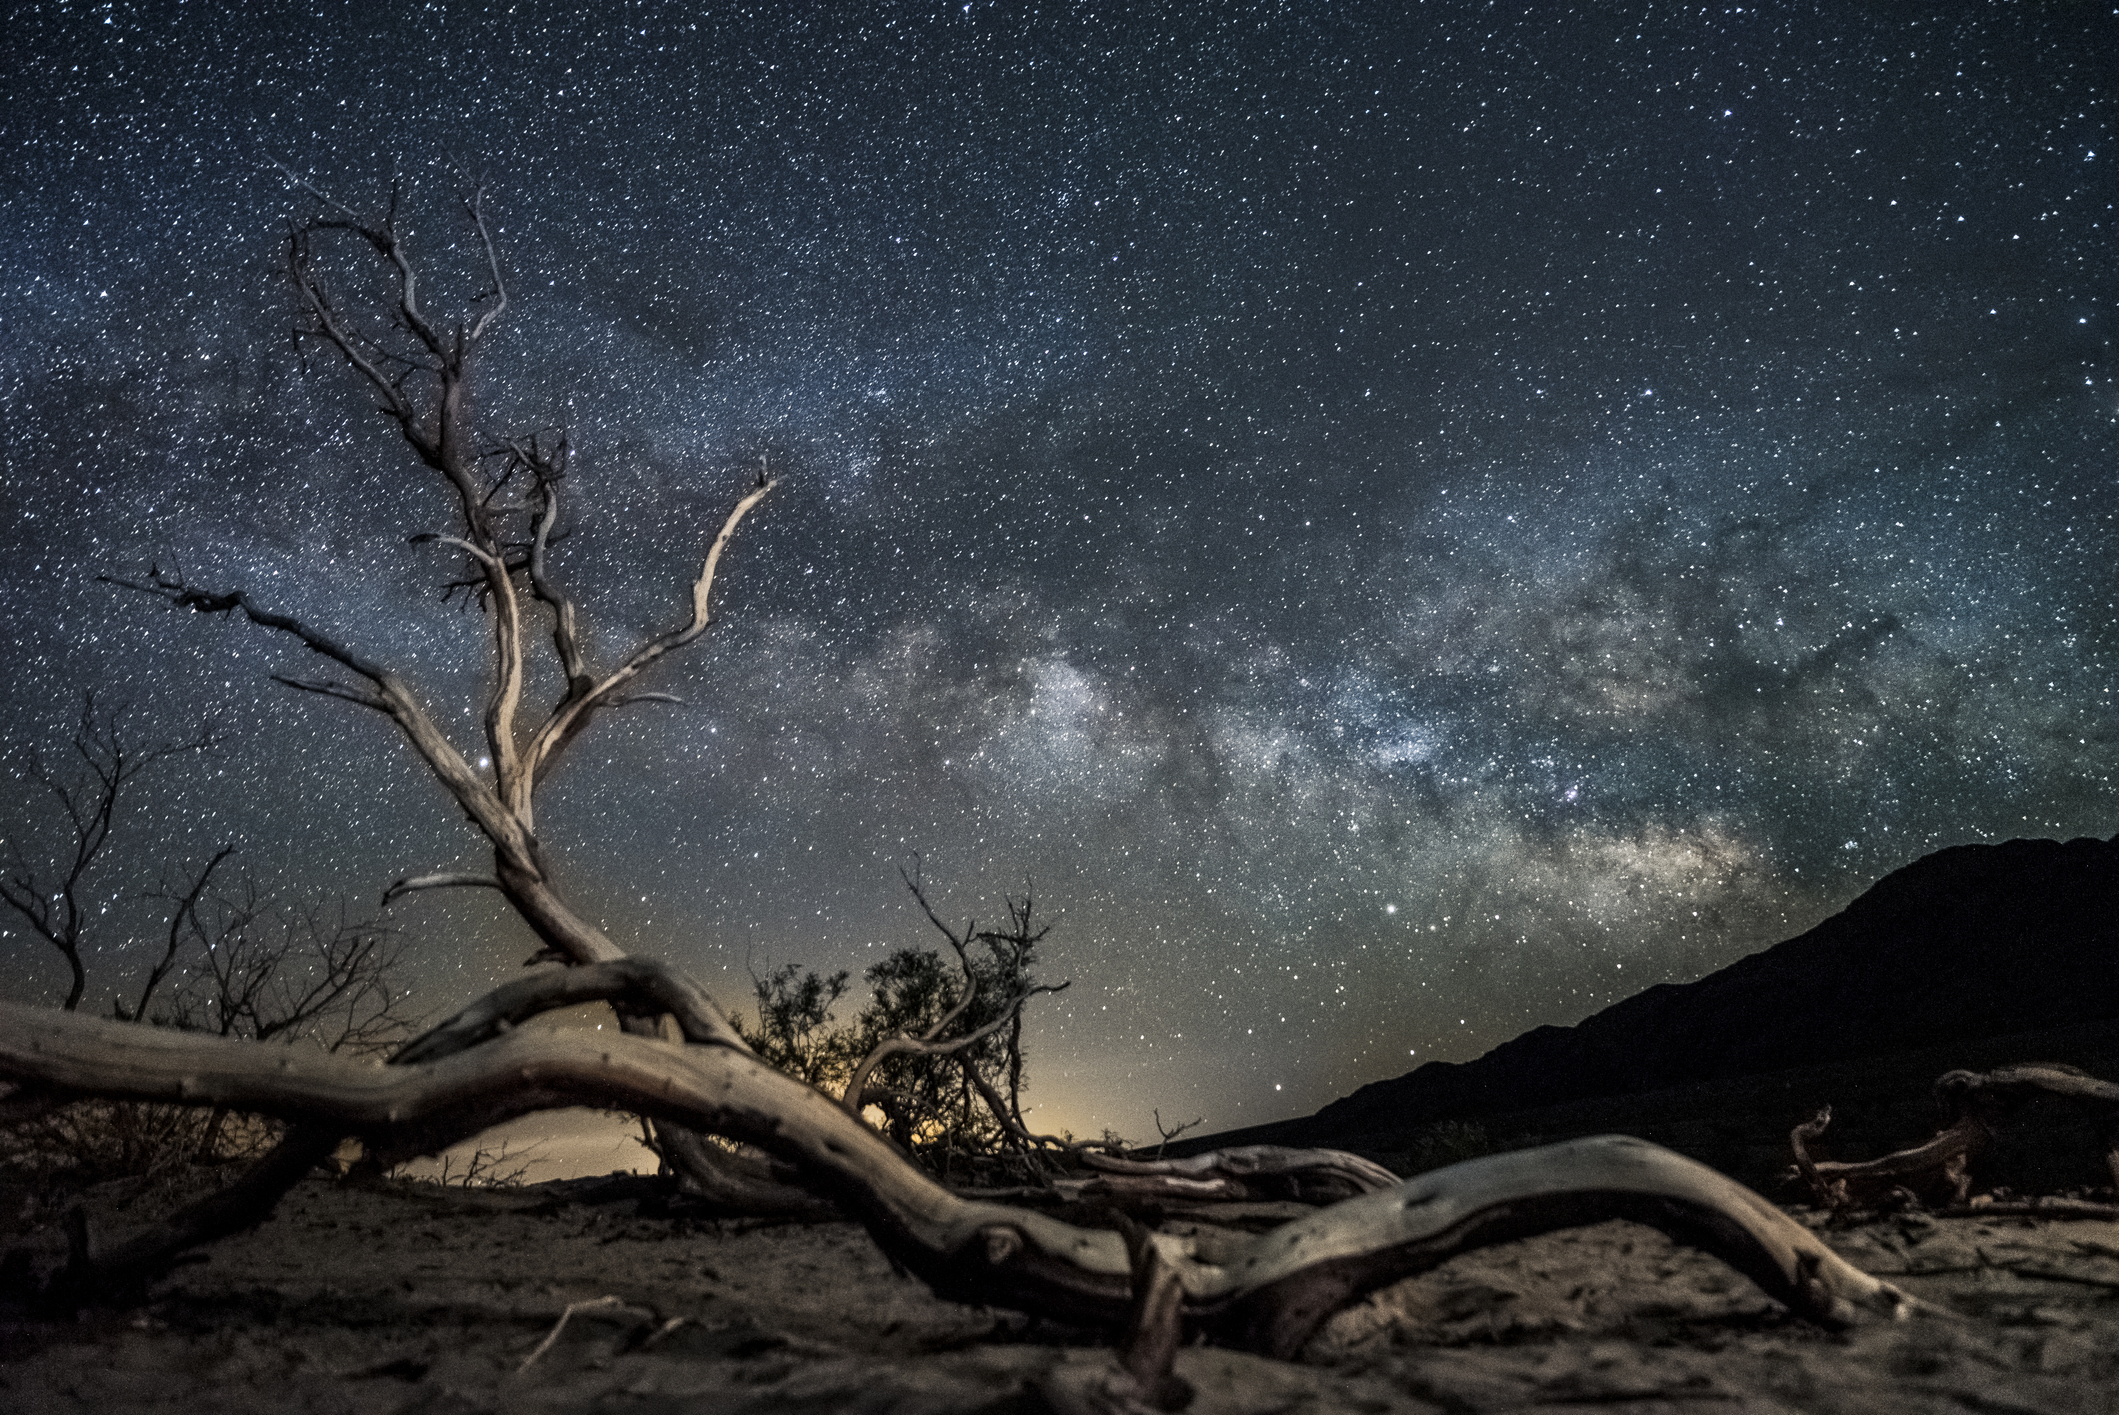 A dried out tree branch under a starry desert sky.